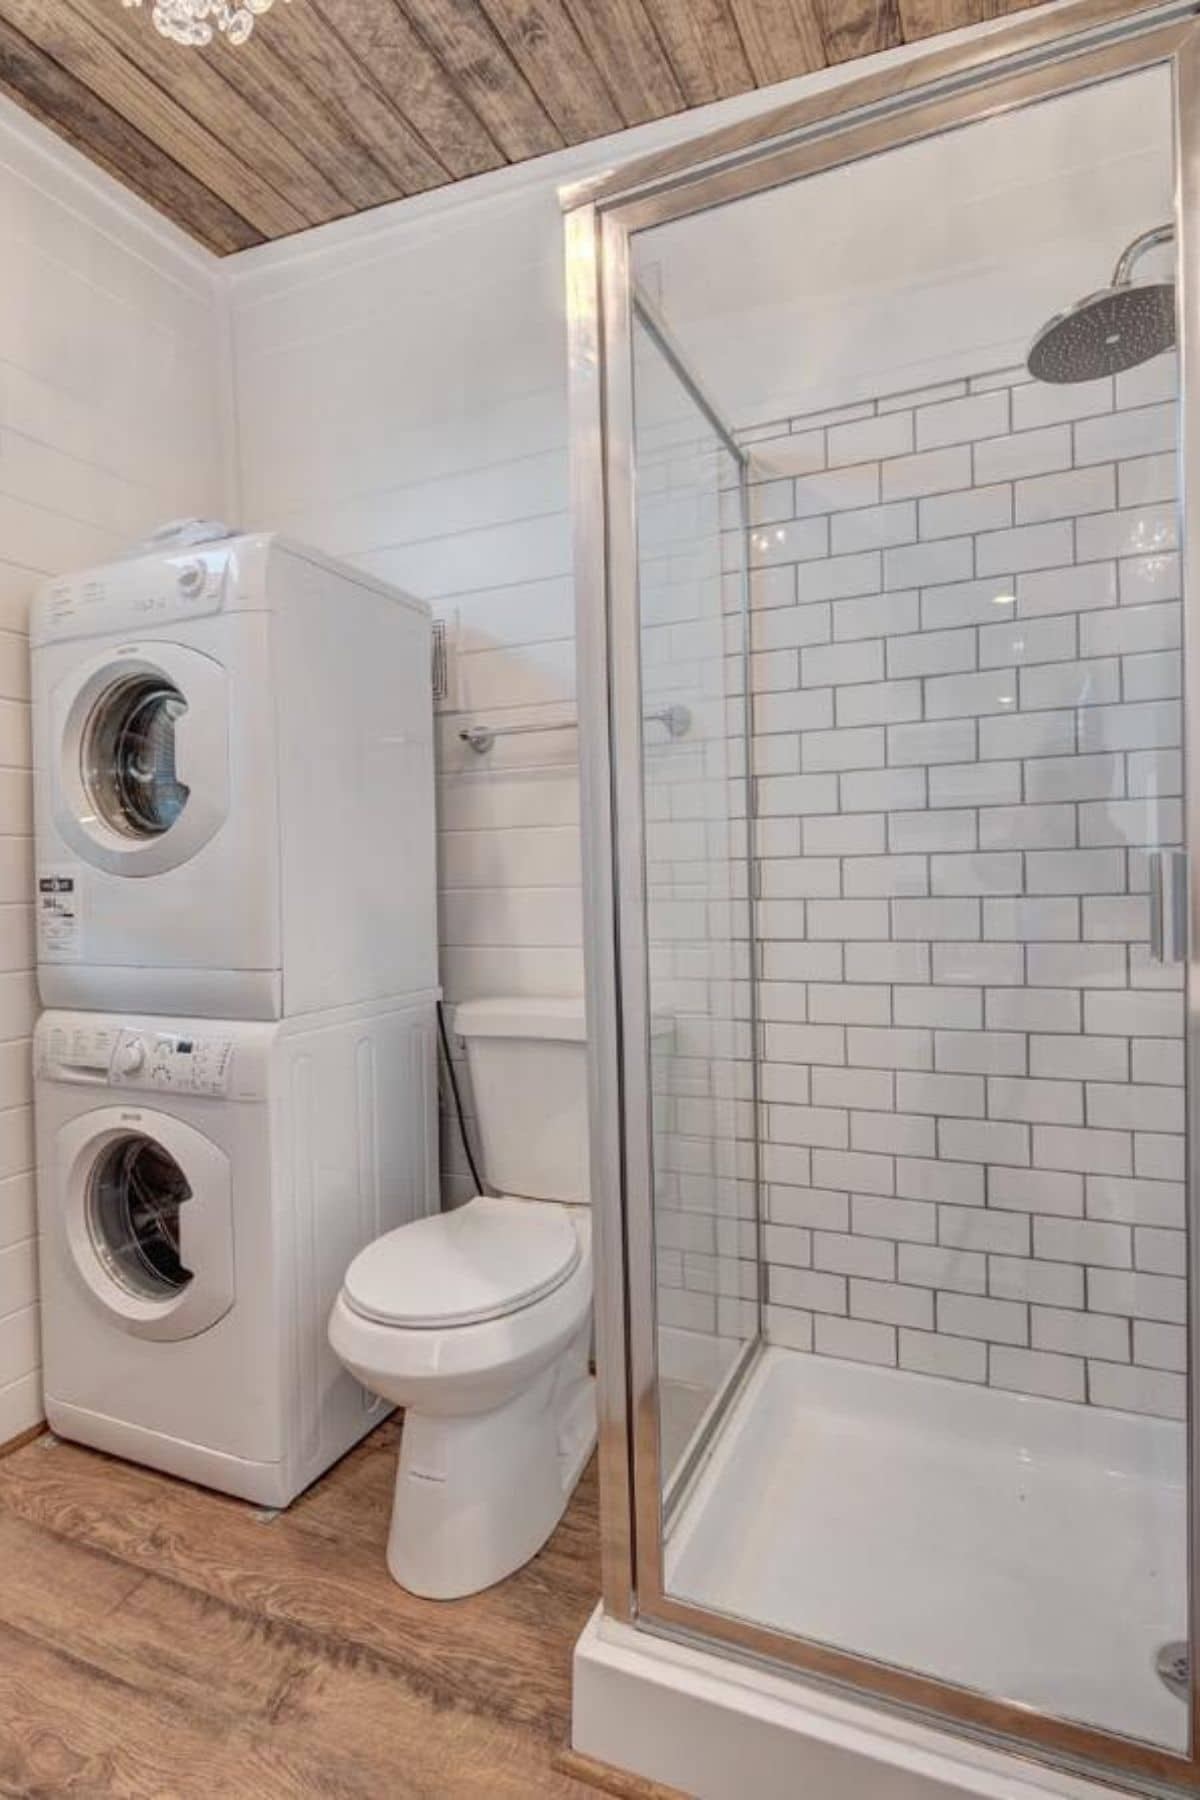 Bathroom with stacking washer and dryer and shower with toilet between the two